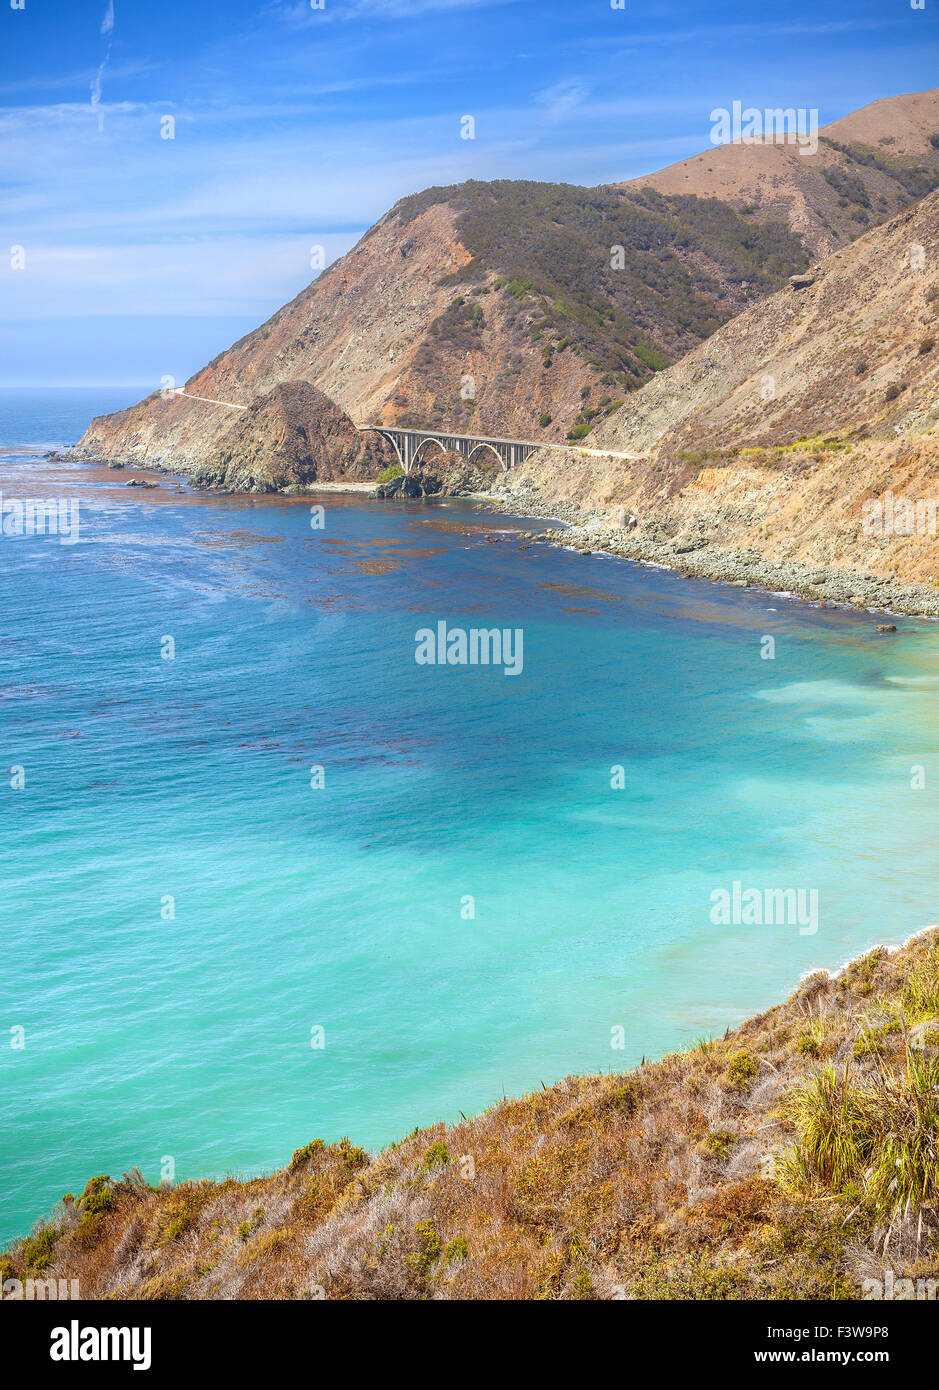 California coastline along Pacific Coast Highway, USA. - Stock Image